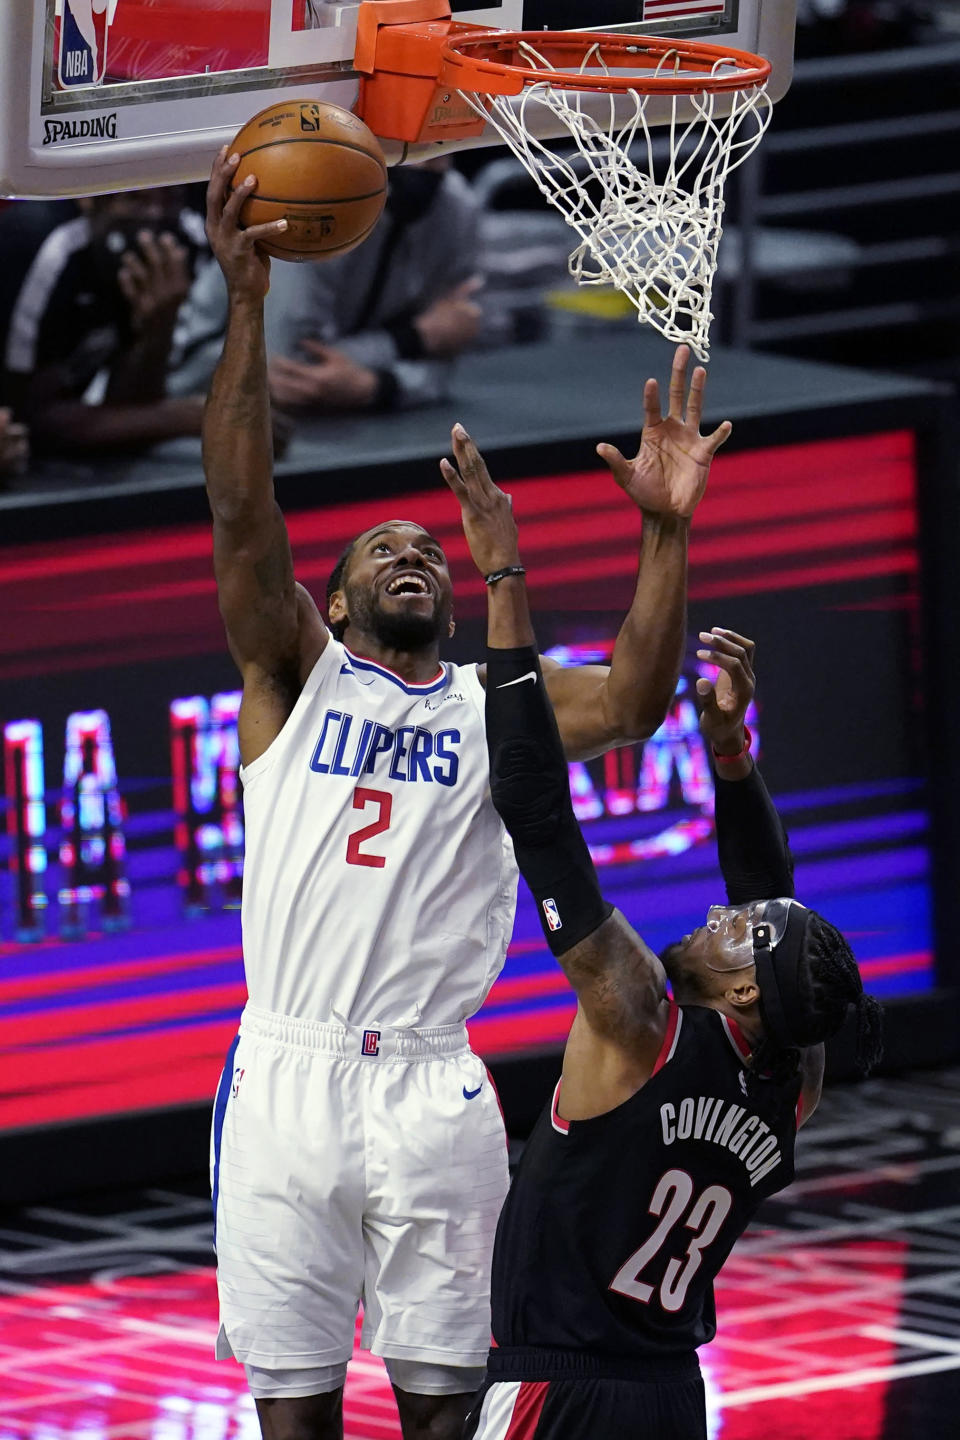 Los Angeles Clippers forward Kawhi Leonard (2) scores over Portland Trail Blazers forward Robert Covington (23) during the first half of an NBA basketball game Tuesday, April 6, 2021, in Los Angeles. (AP Photo/Marcio Jose Sanchez)